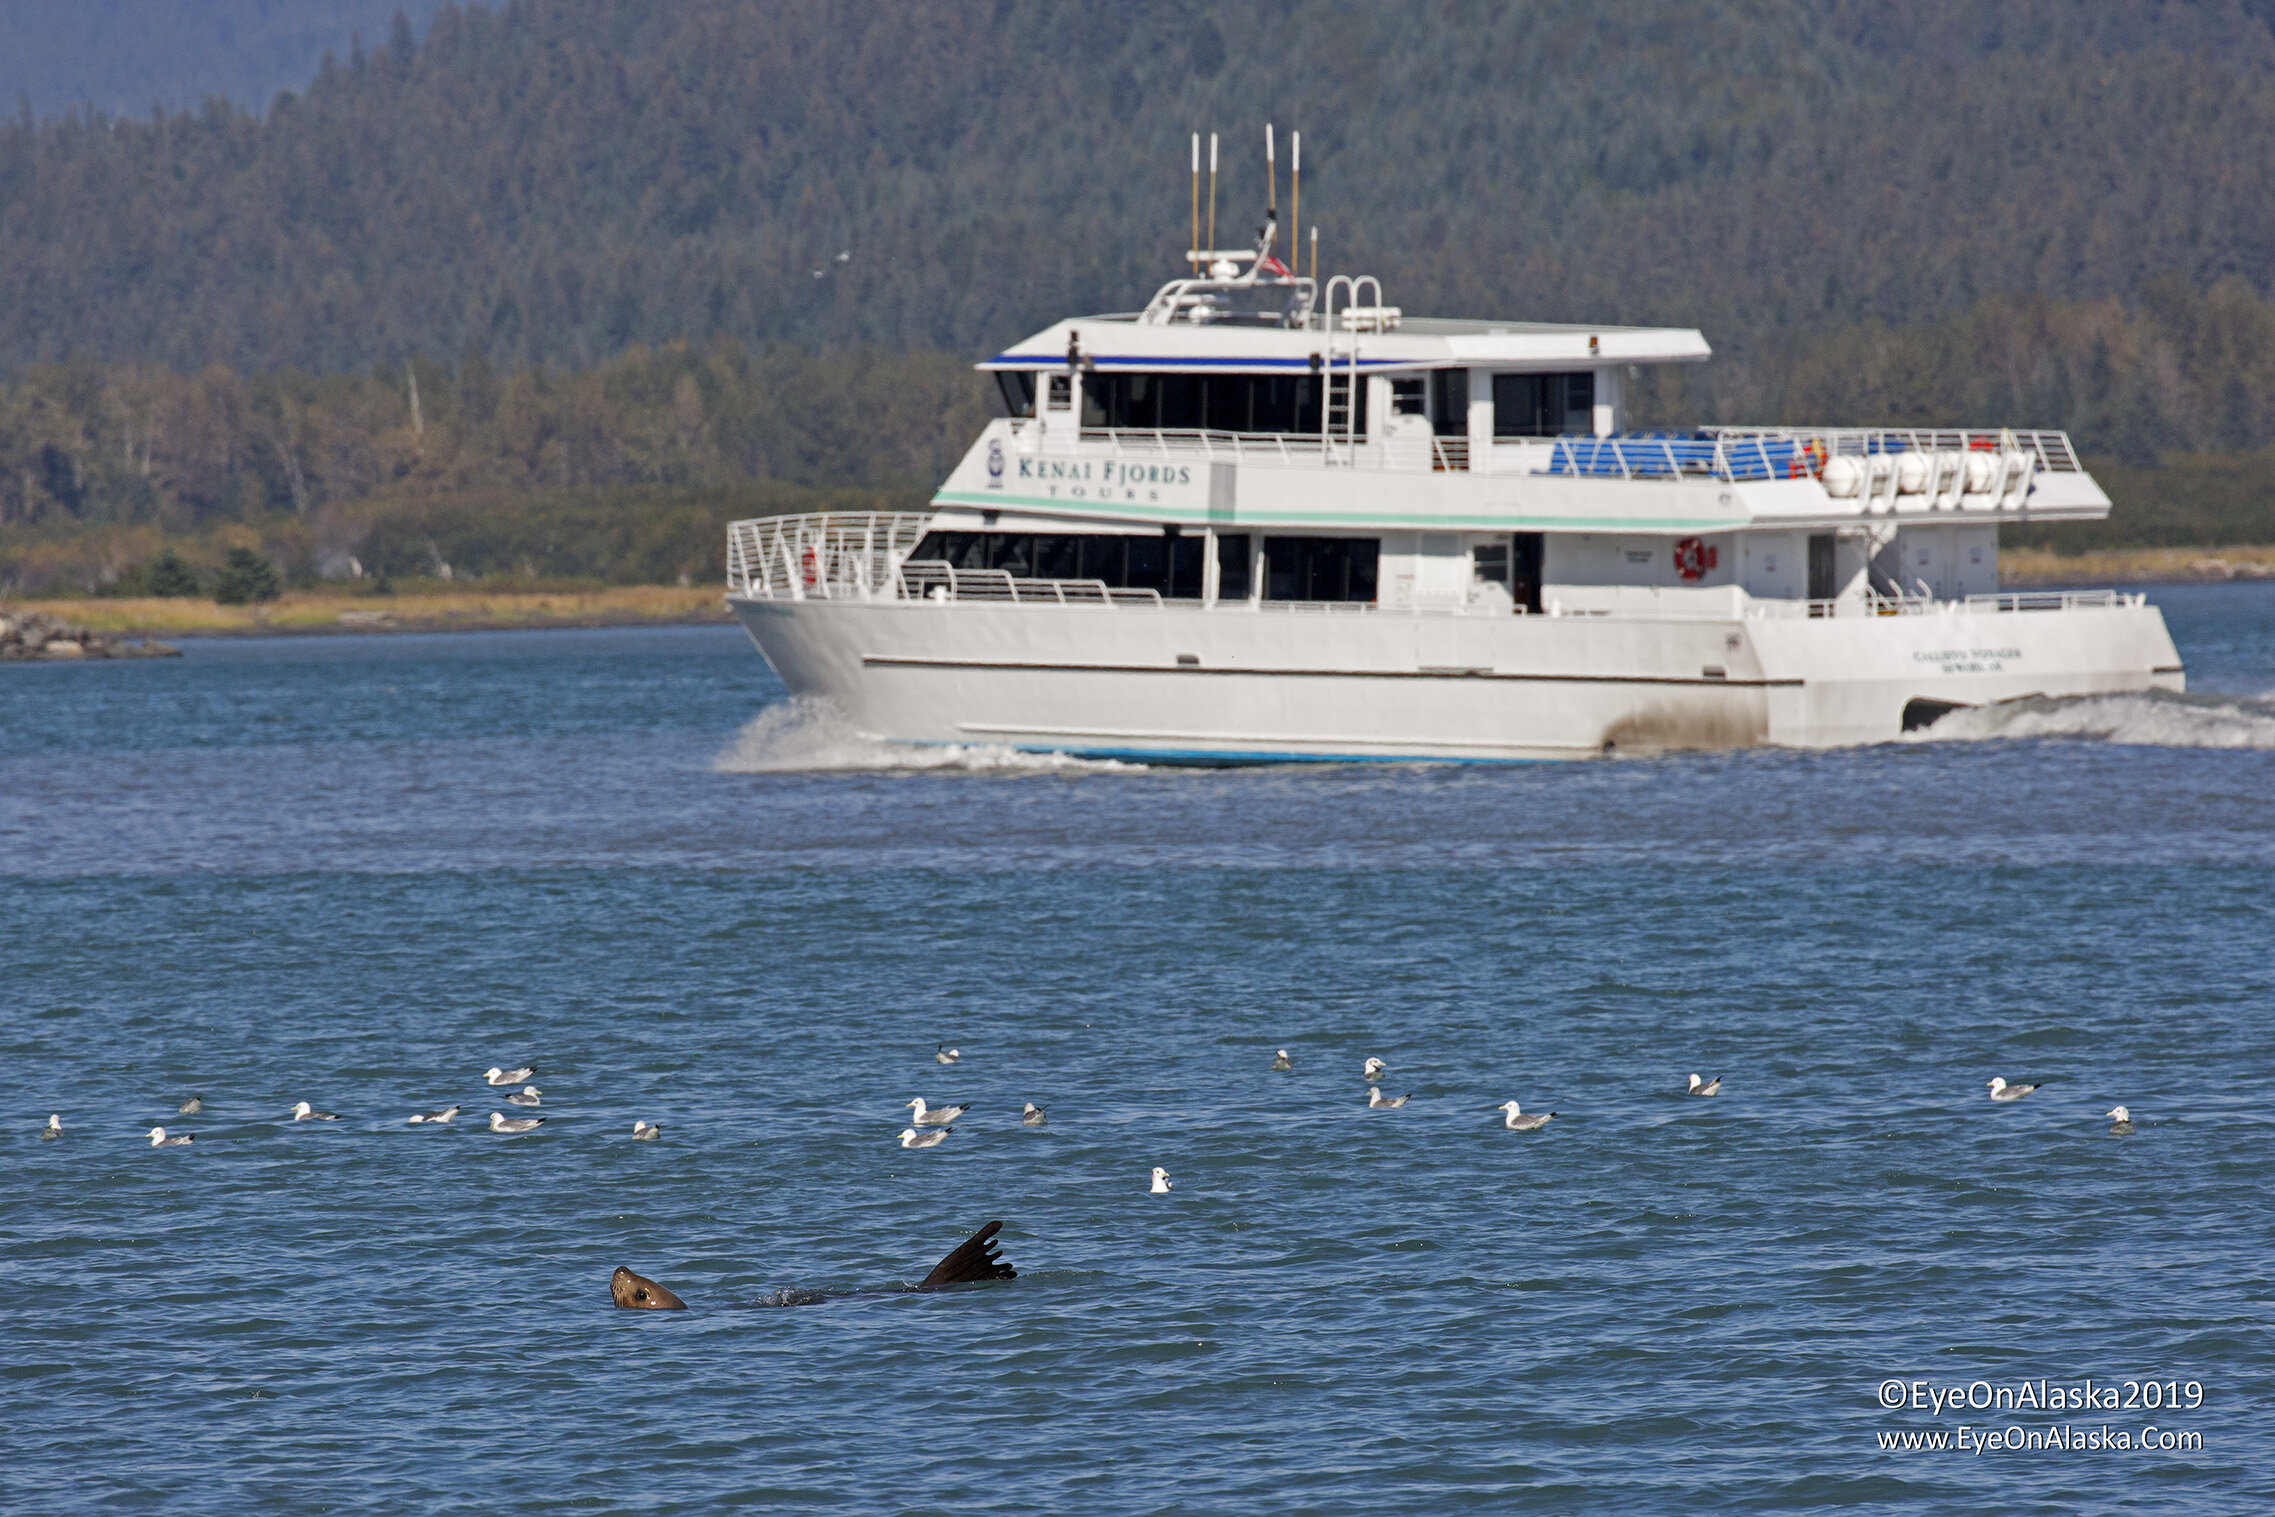 Waving at one of the Kenai Fjords tour boats that's heading back into the harbor.